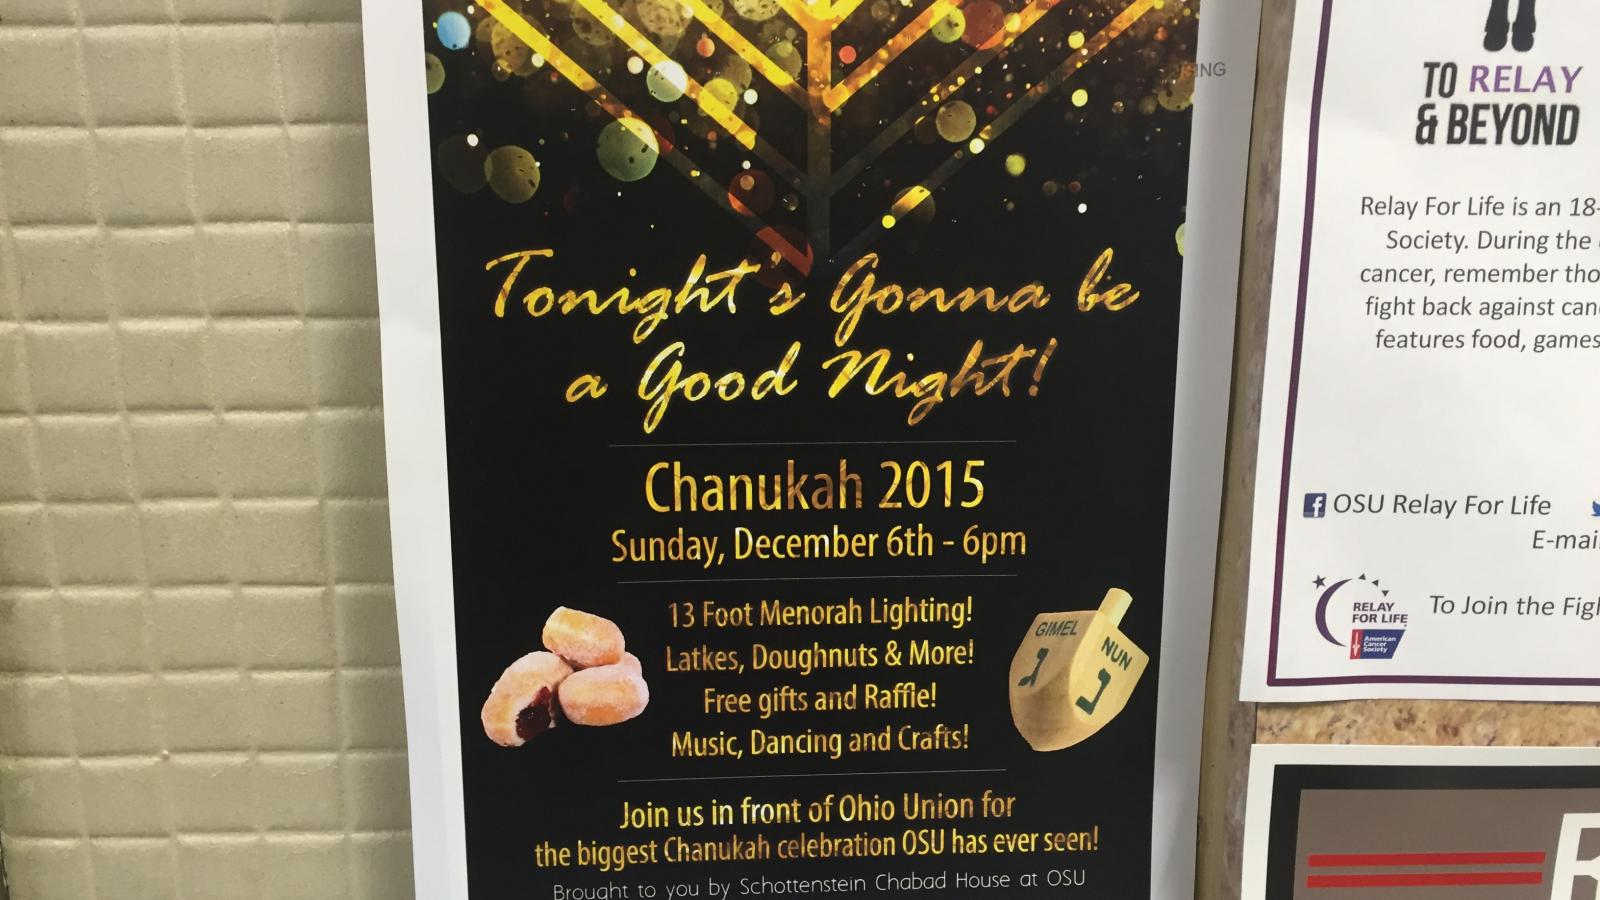 Ohio State University Campus Religion: Chanukah Celbration in Taylor Tower